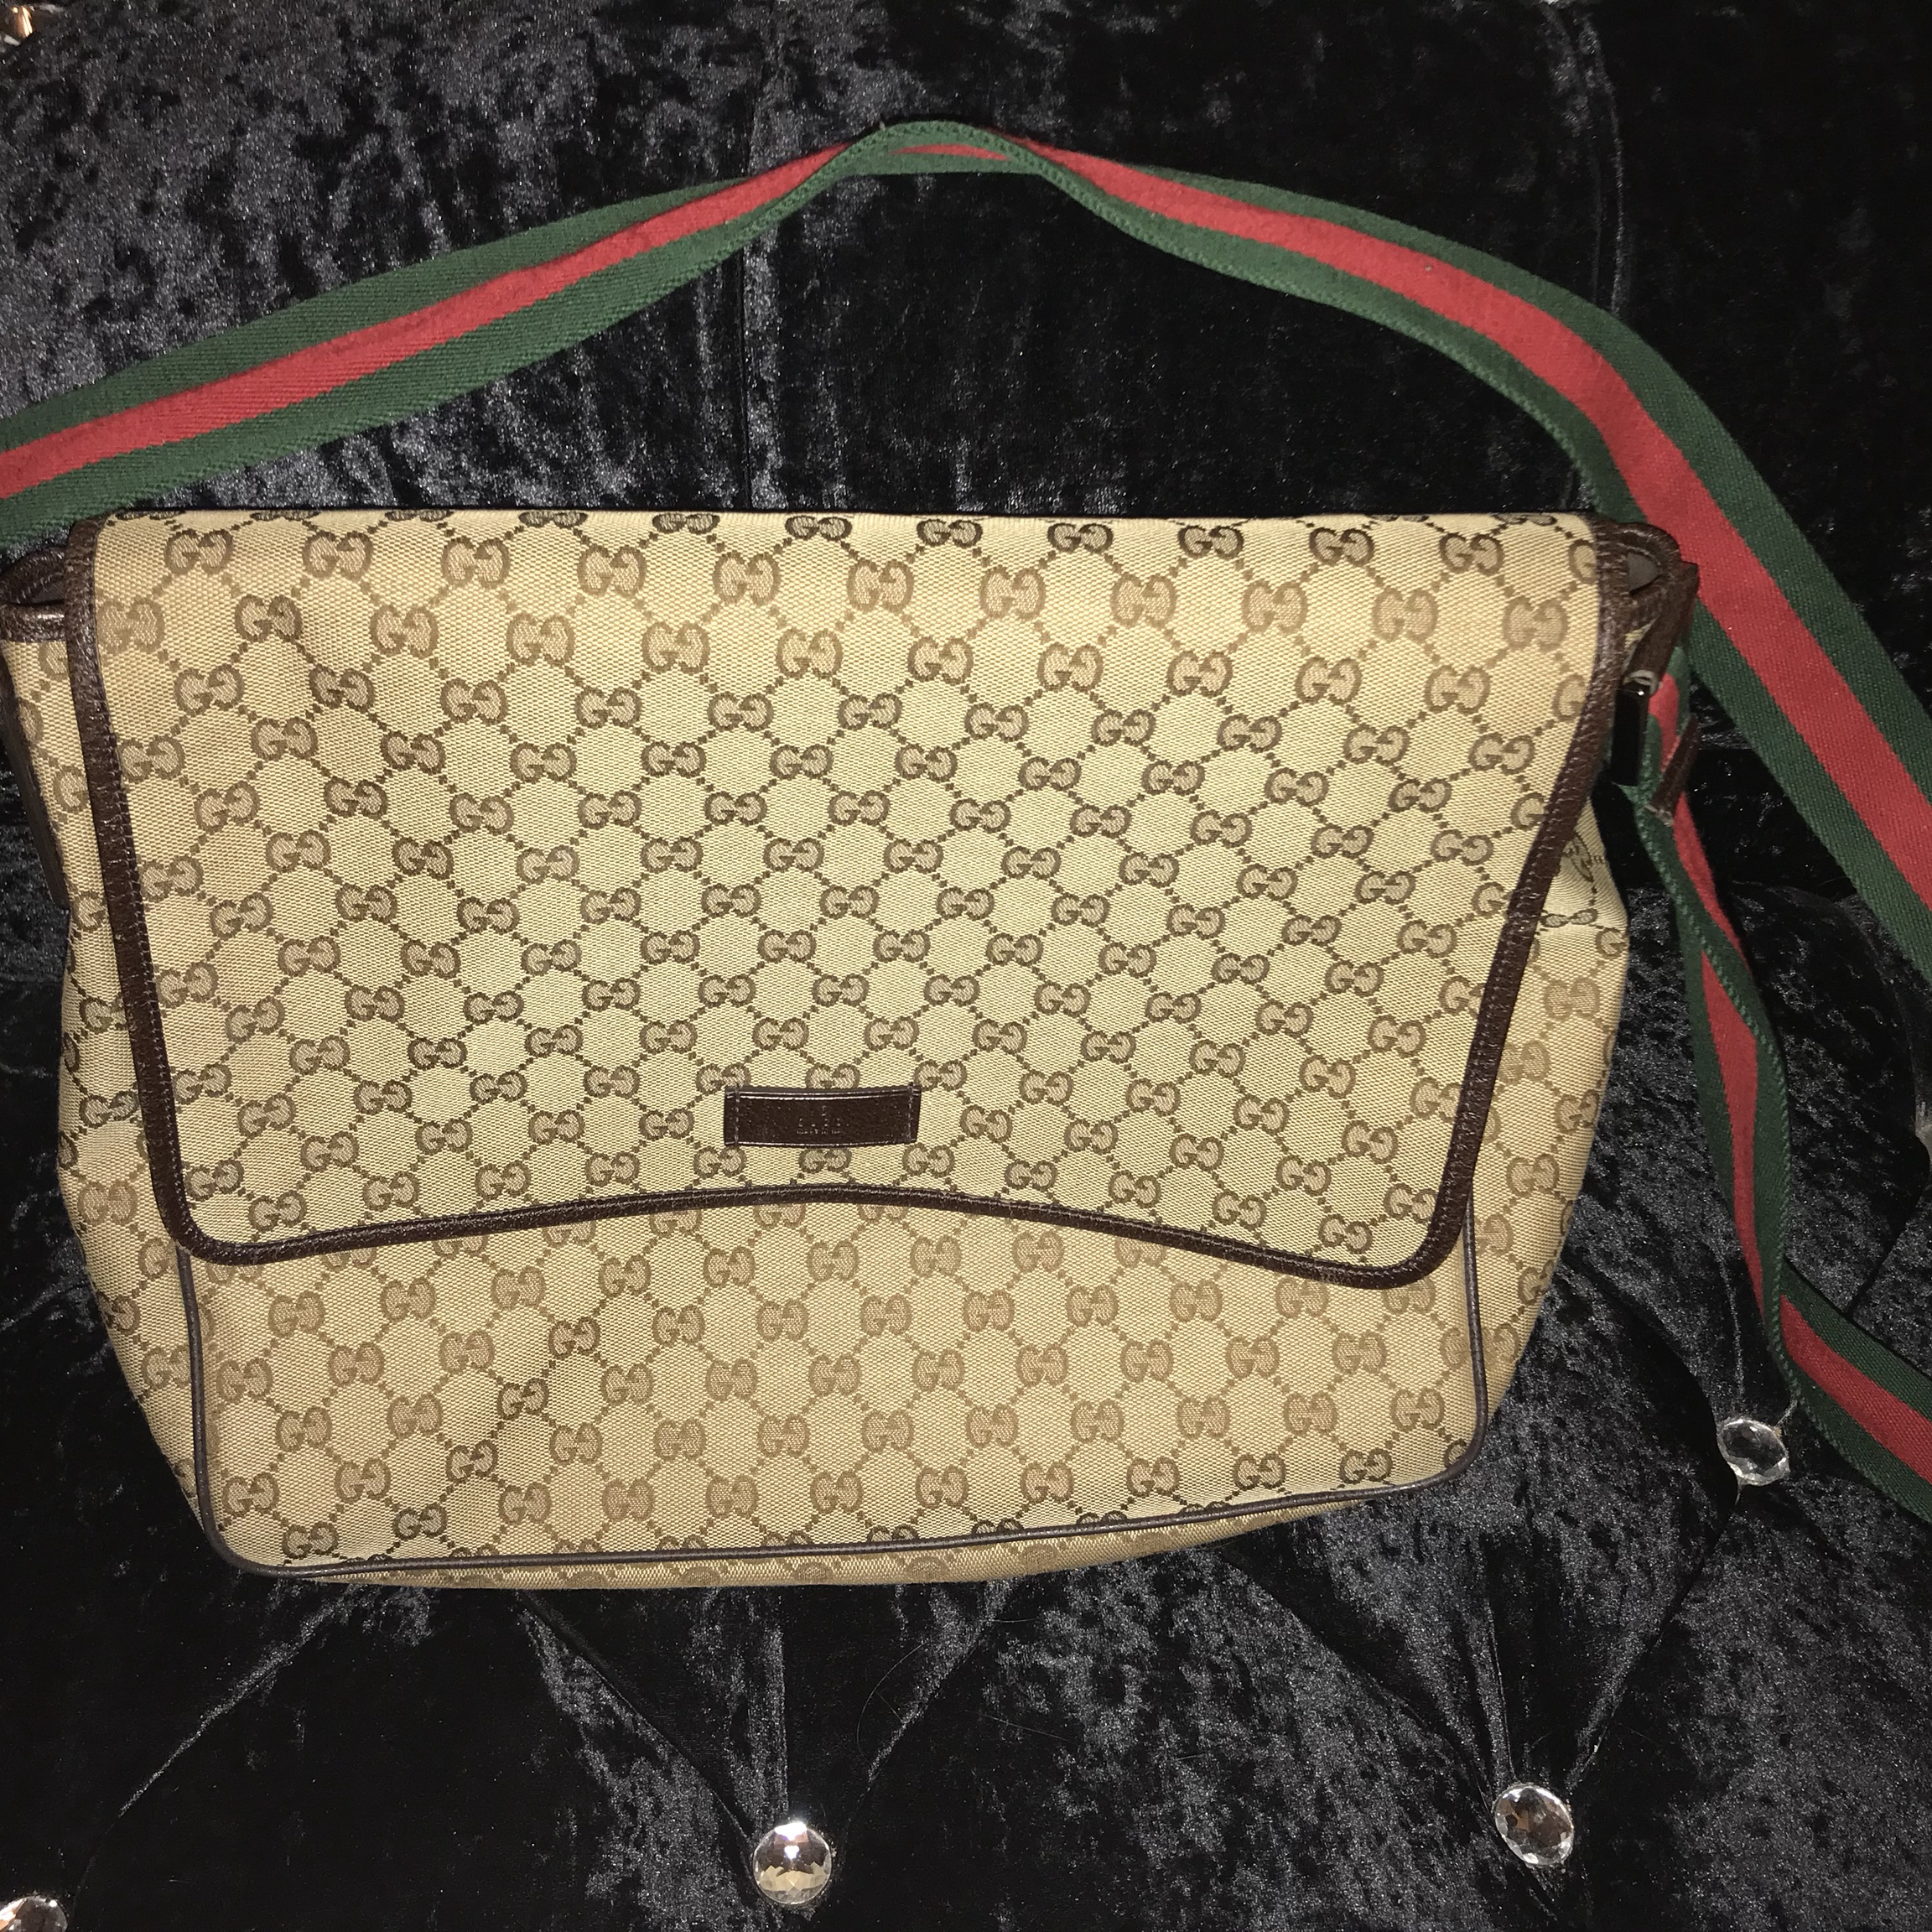 edf473de2b3958 100% genuine Gucci side bag large size in perfect condition - Depop